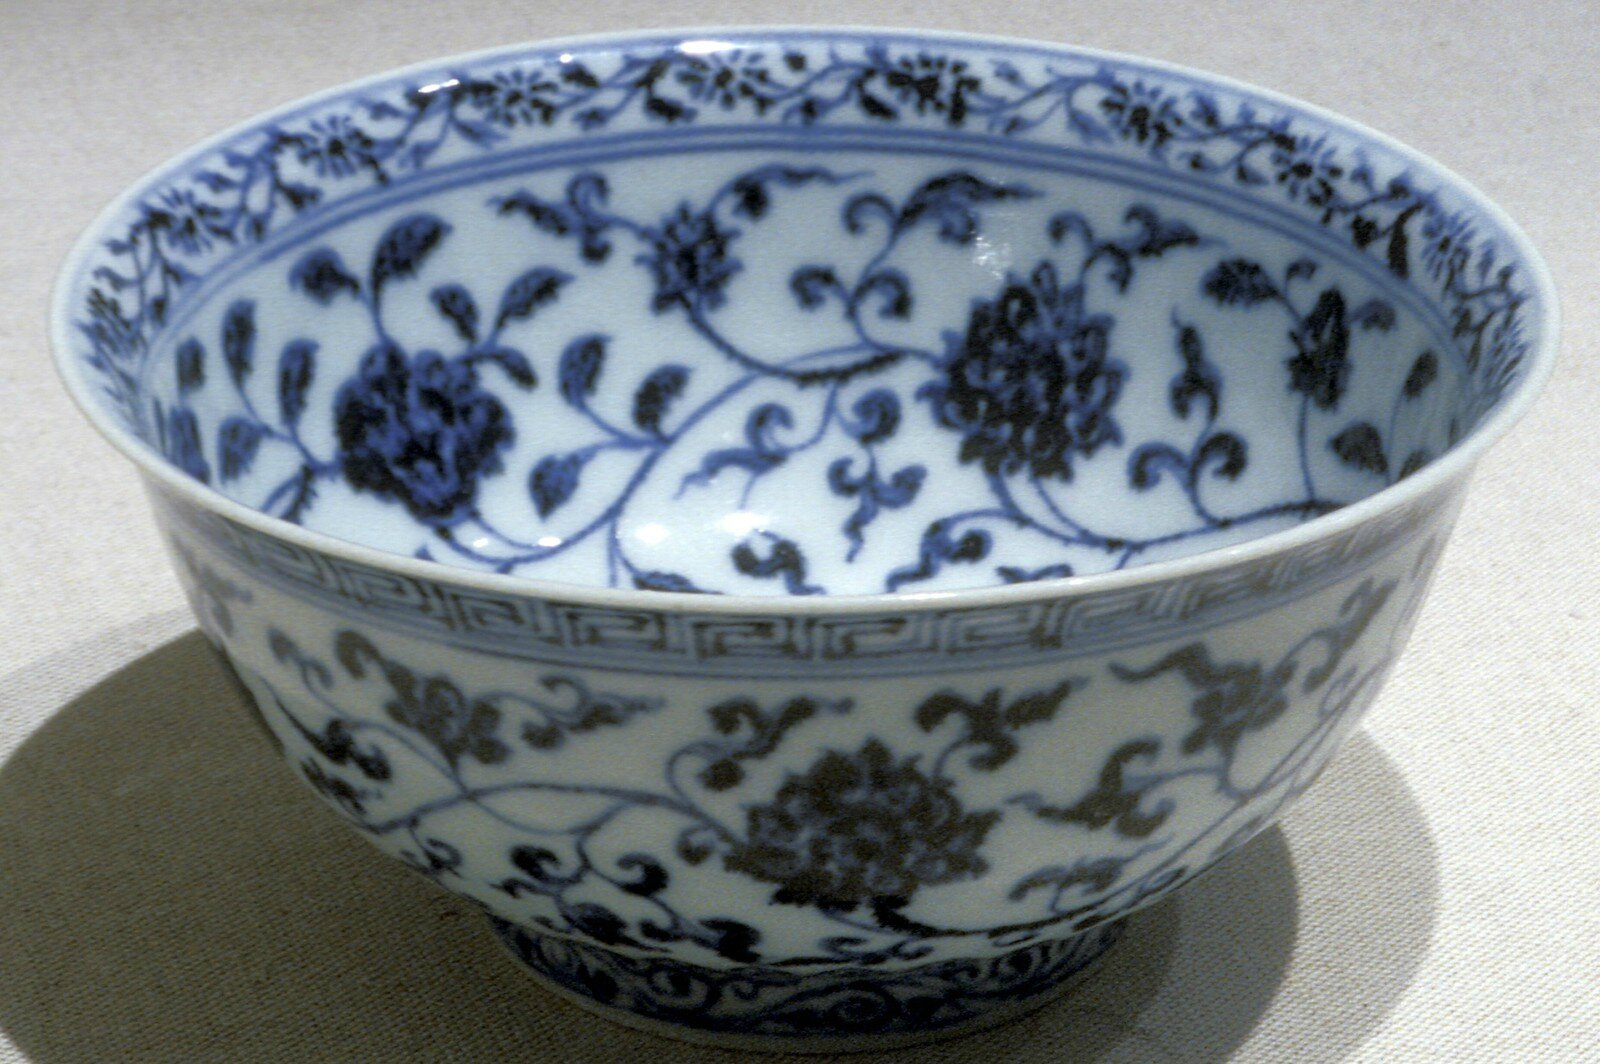 Bowl with lotus and floral designs, Ming dynasty, early 1400s, Yongle period, porcelain with underglaze blue, 3 1/8 x 6 3/4 (diam.) in.Gift of Mr. and Mrs. Eli Lilly. 60.101. Indianapolis Museum of Art © 2014 IMA